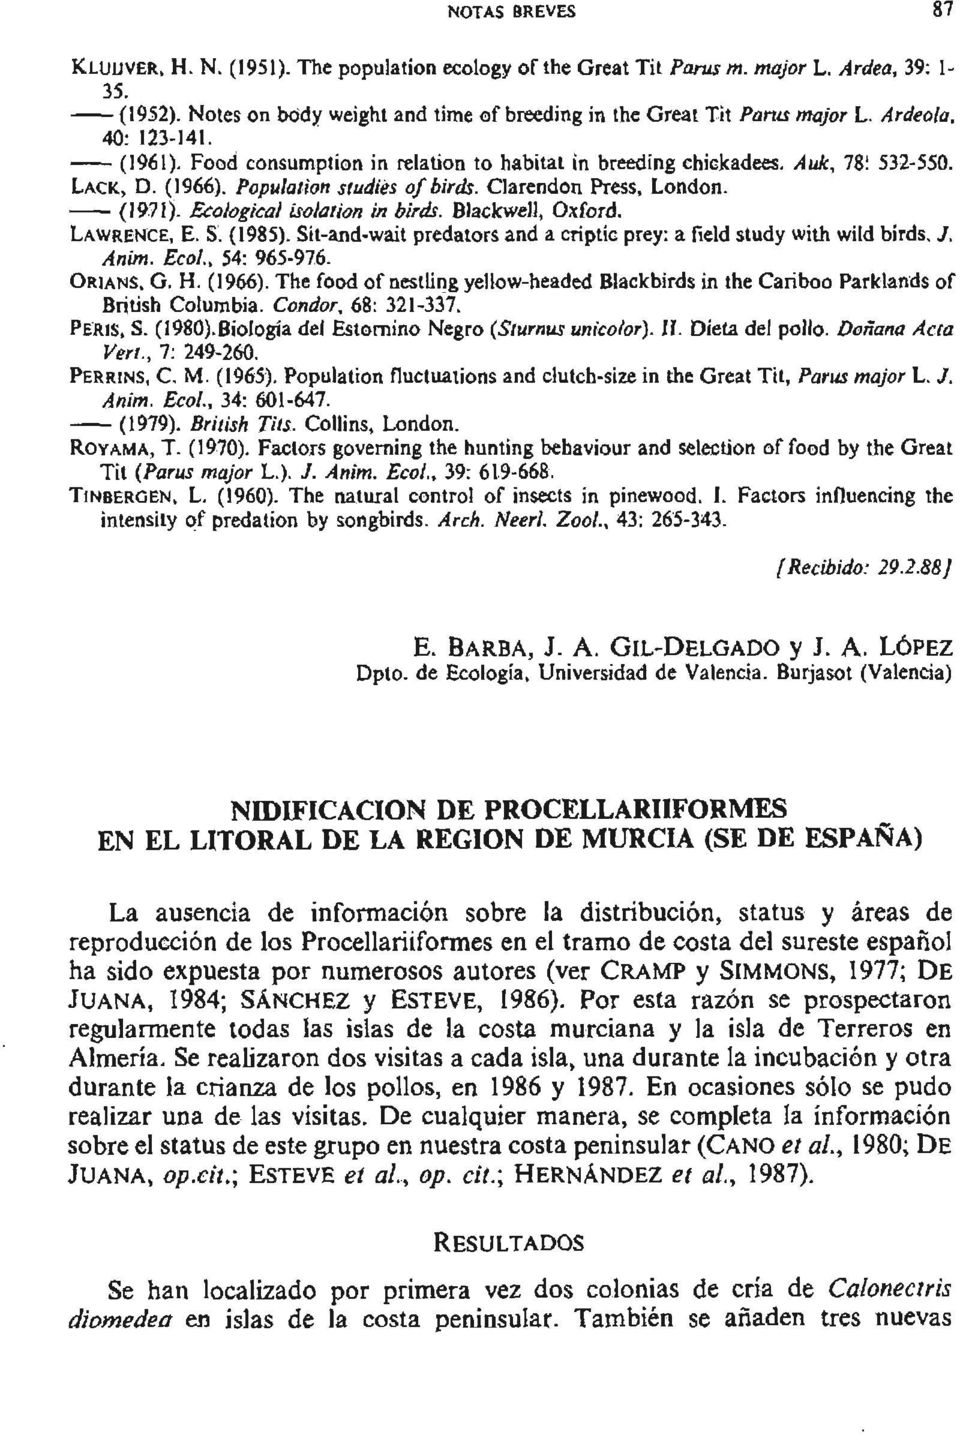 Ecclogical isclafim in birds. Blackwell. Oxford. LAWRENCE, E. S. ( 1985). Sil-and-wait predators and a cnptic prey: a field study wilh wild birds. J. Anim. Ecal., 54: 965-976. ORIANS, G. H. (1966).